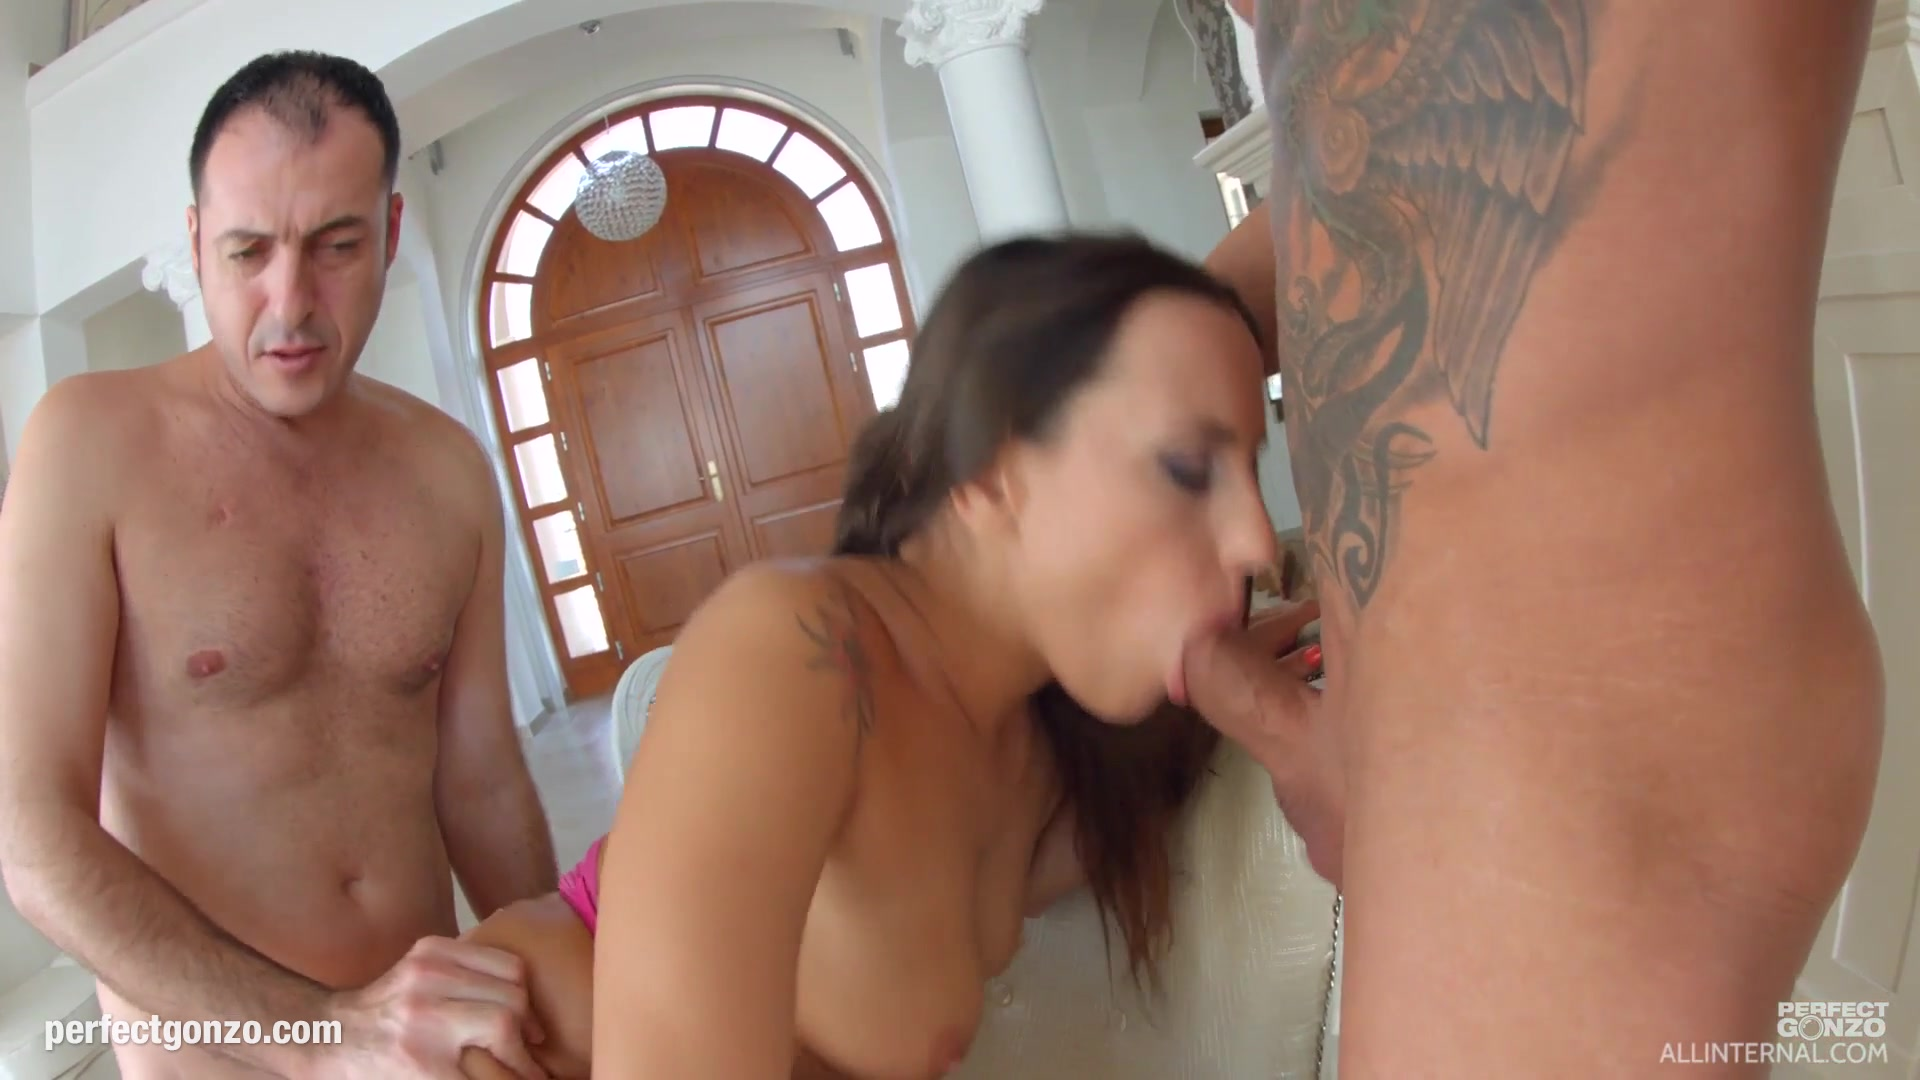 Sexy Video Accommodatingly definition of marriage